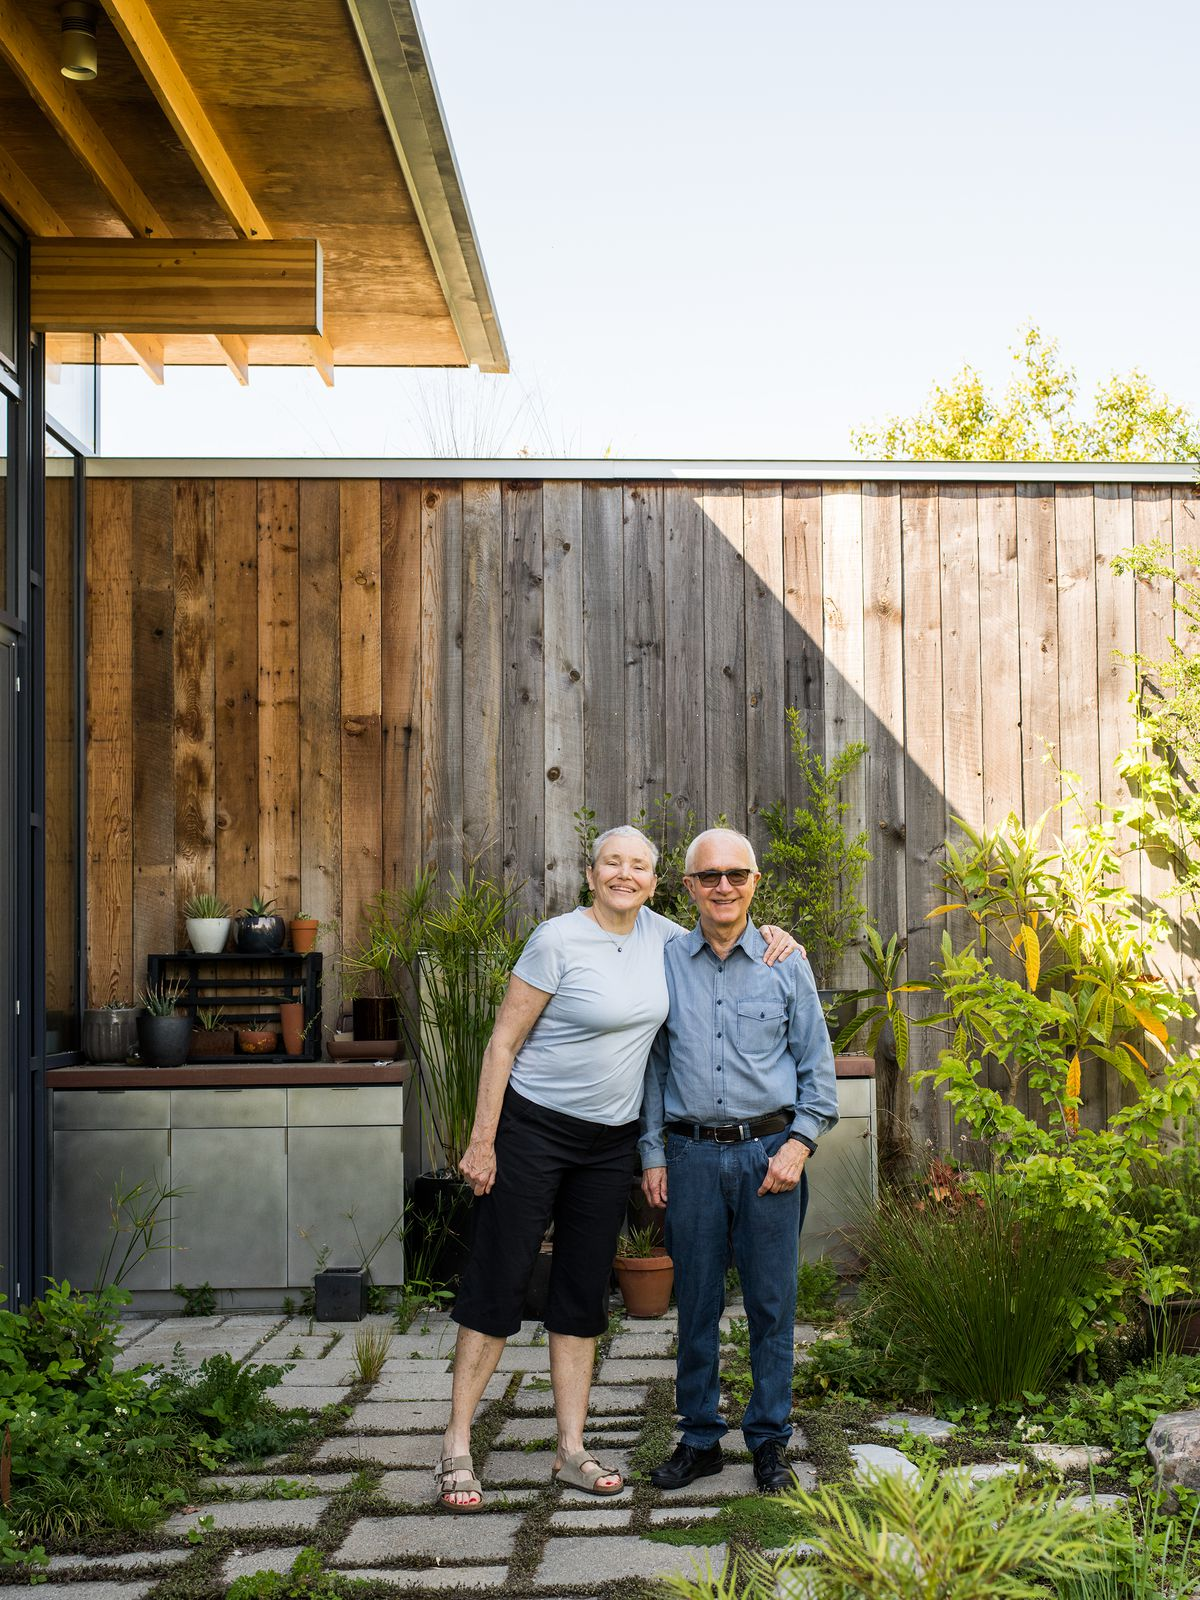 Two people, a man and a woman, are standing outside.  Behind them is a tall wooden fence and plants next to the outside area they stand on.